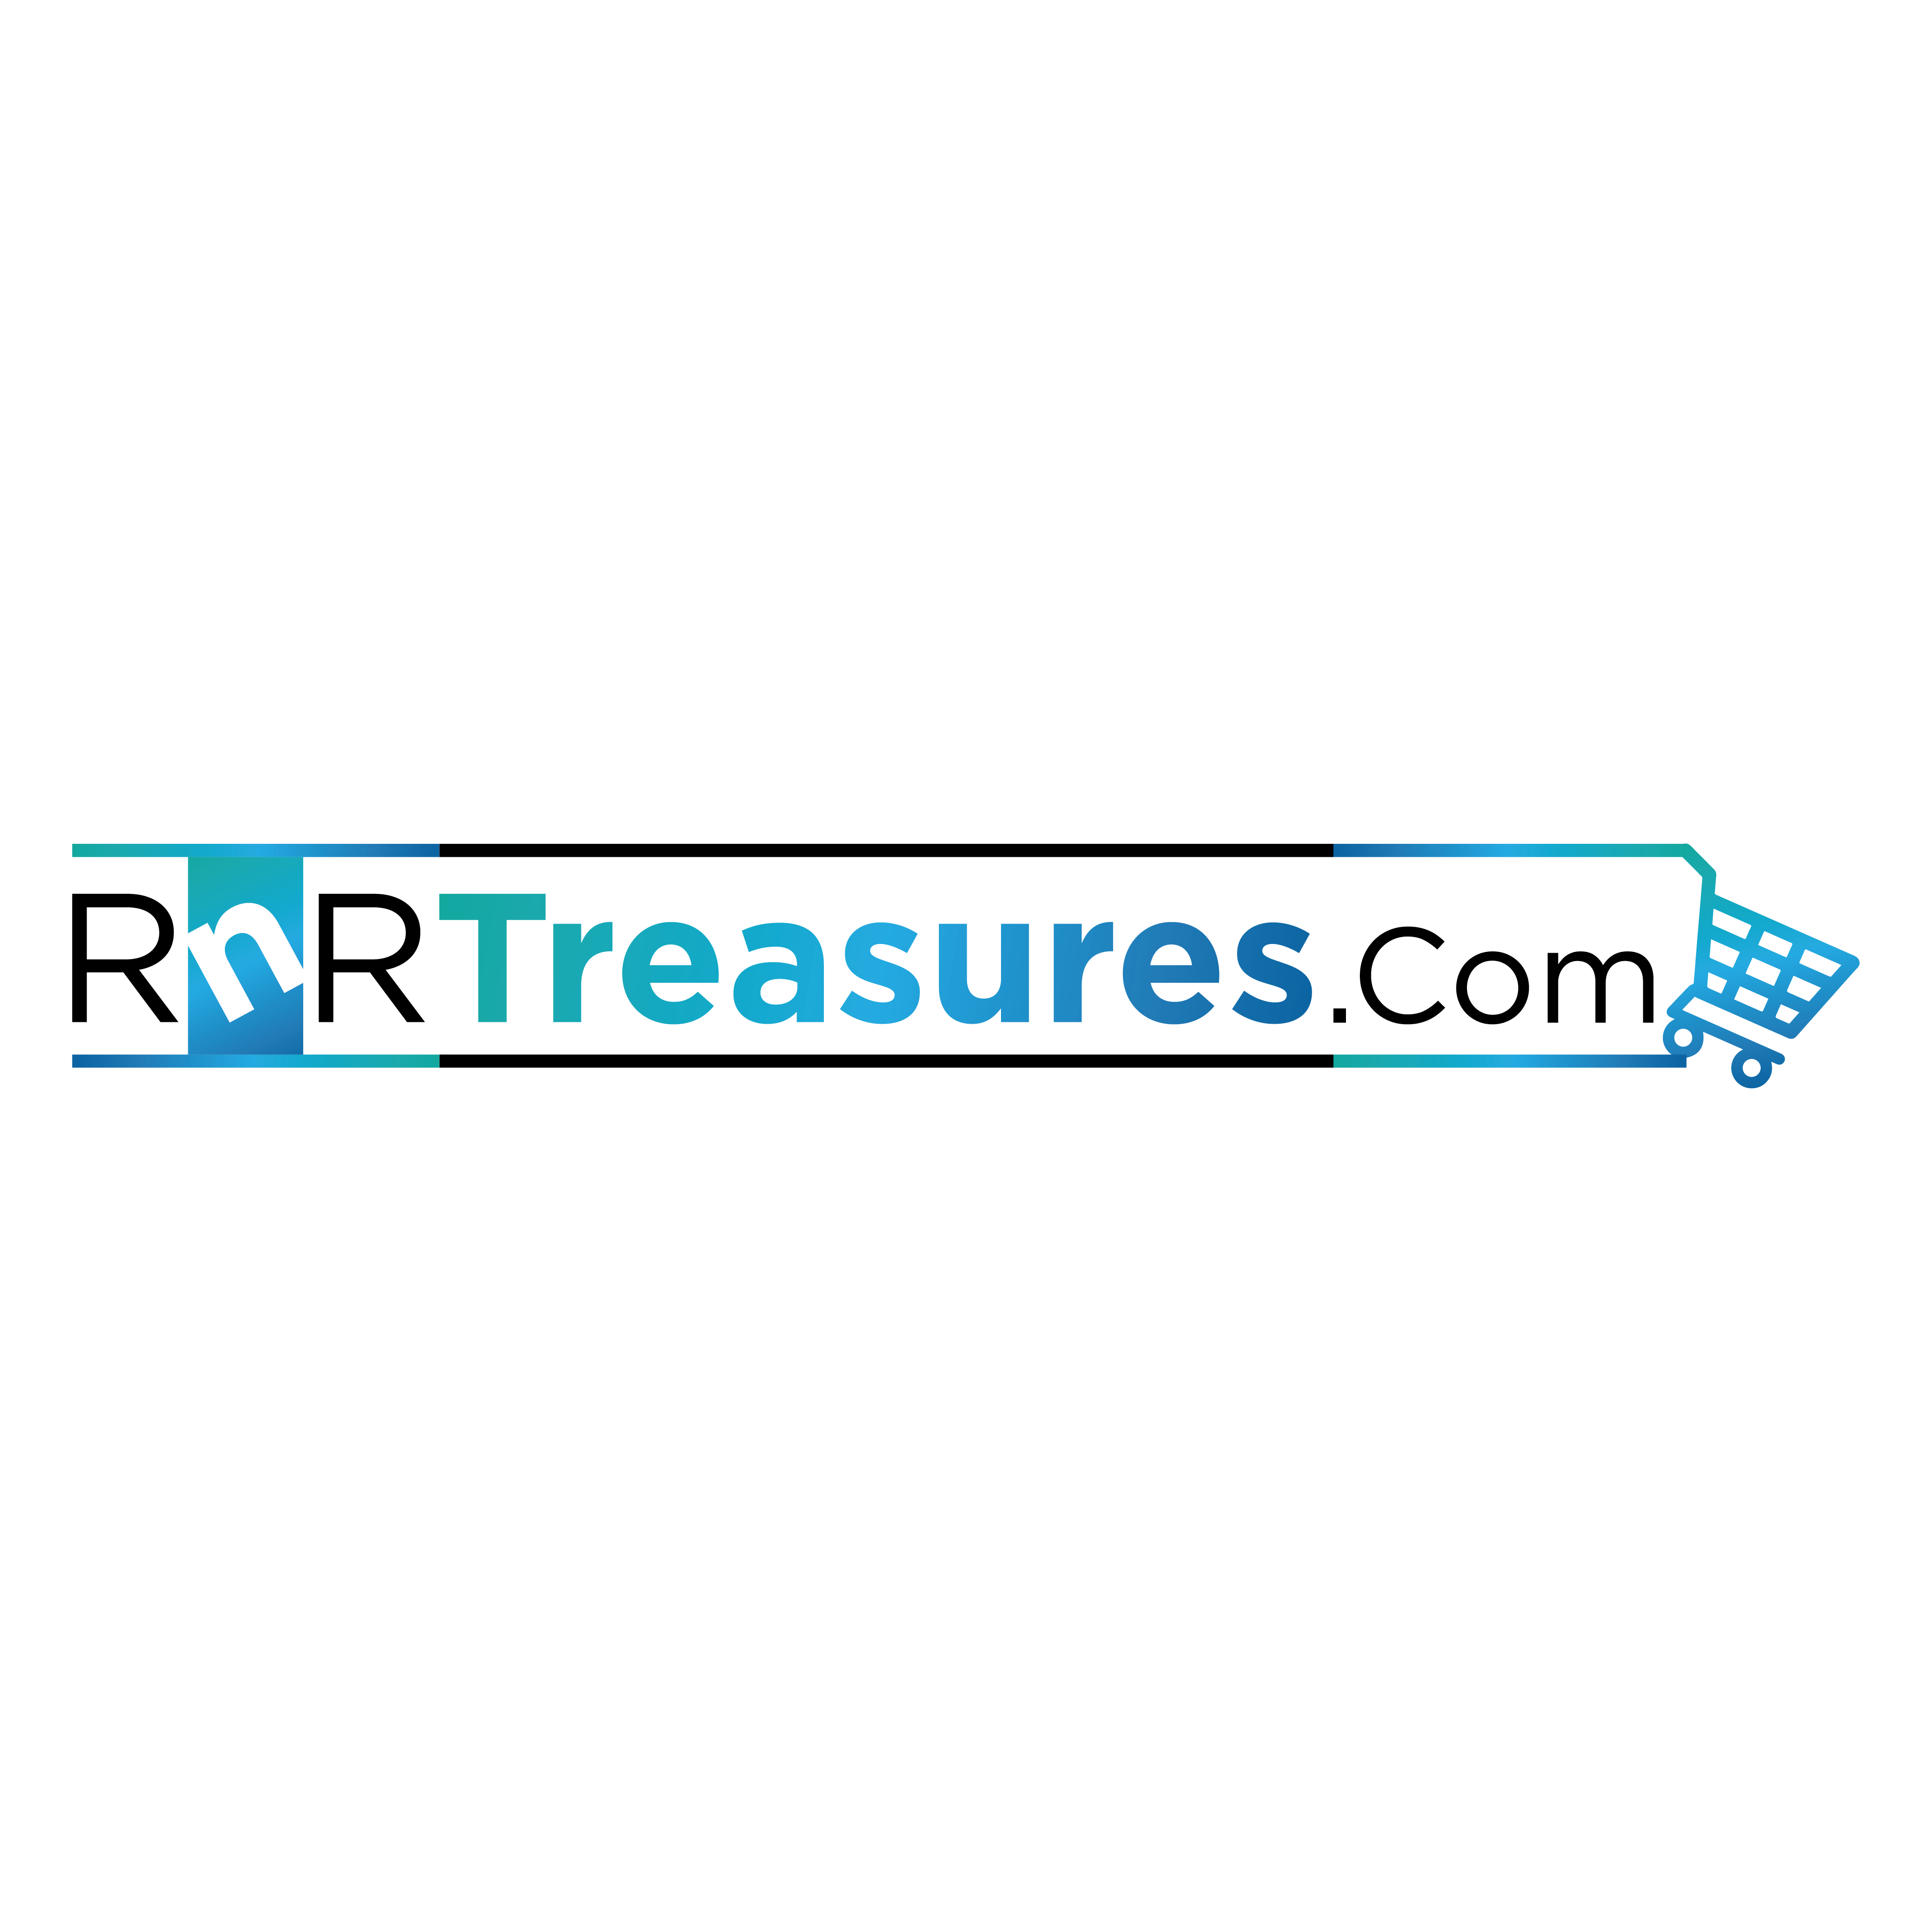 RnRTreasures.com: The Best Way to Shop and Save Online